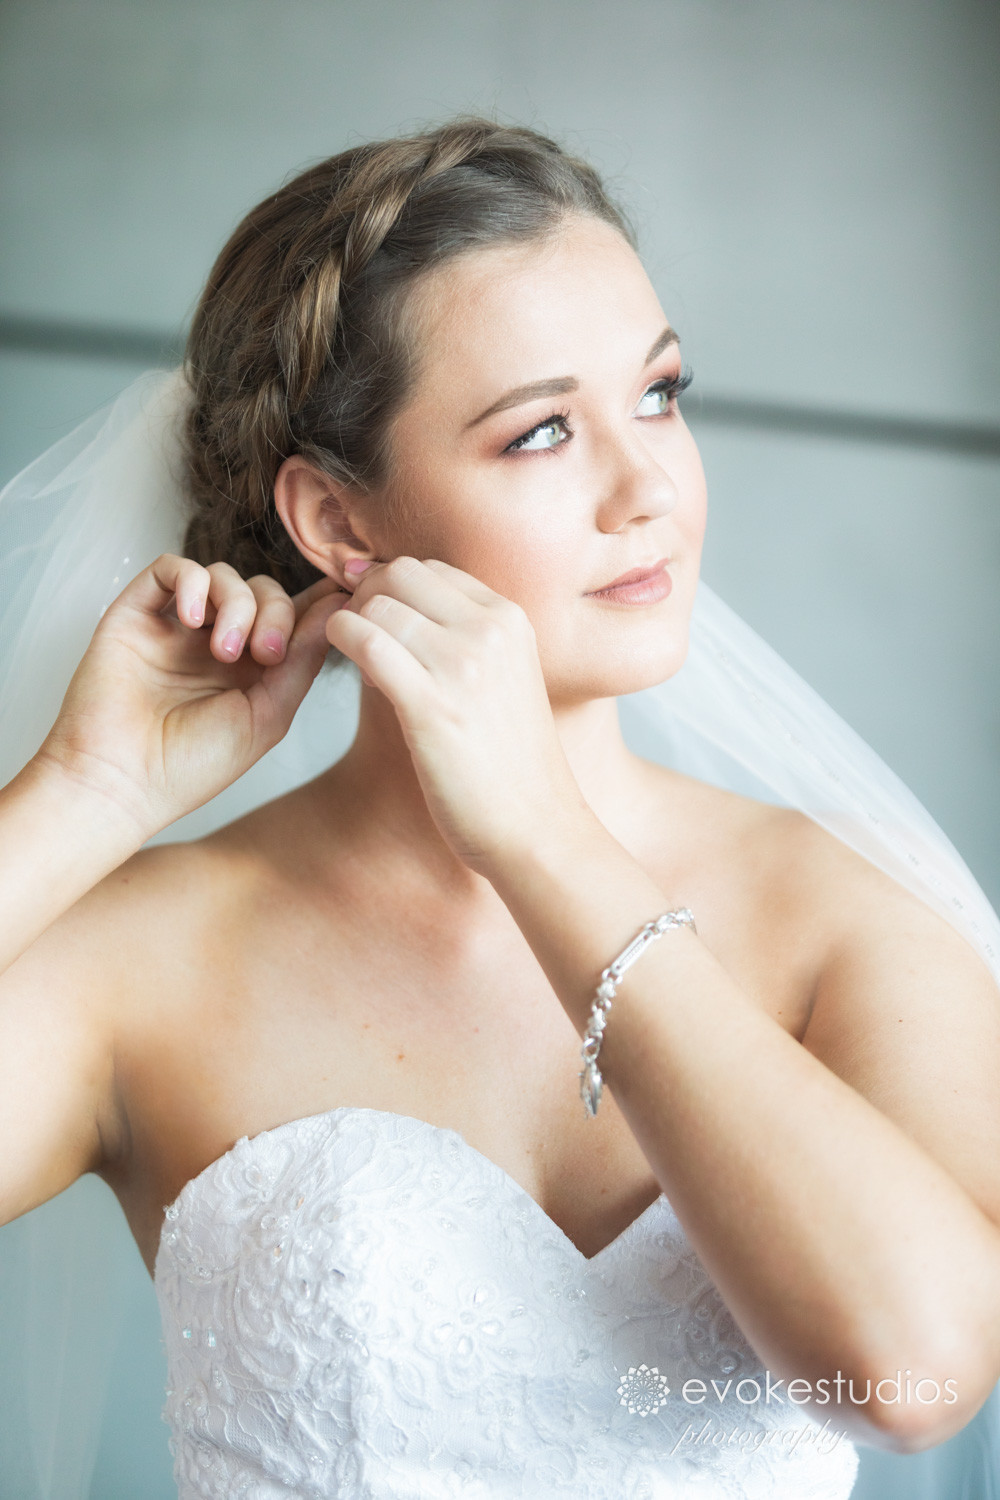 Brides earrings